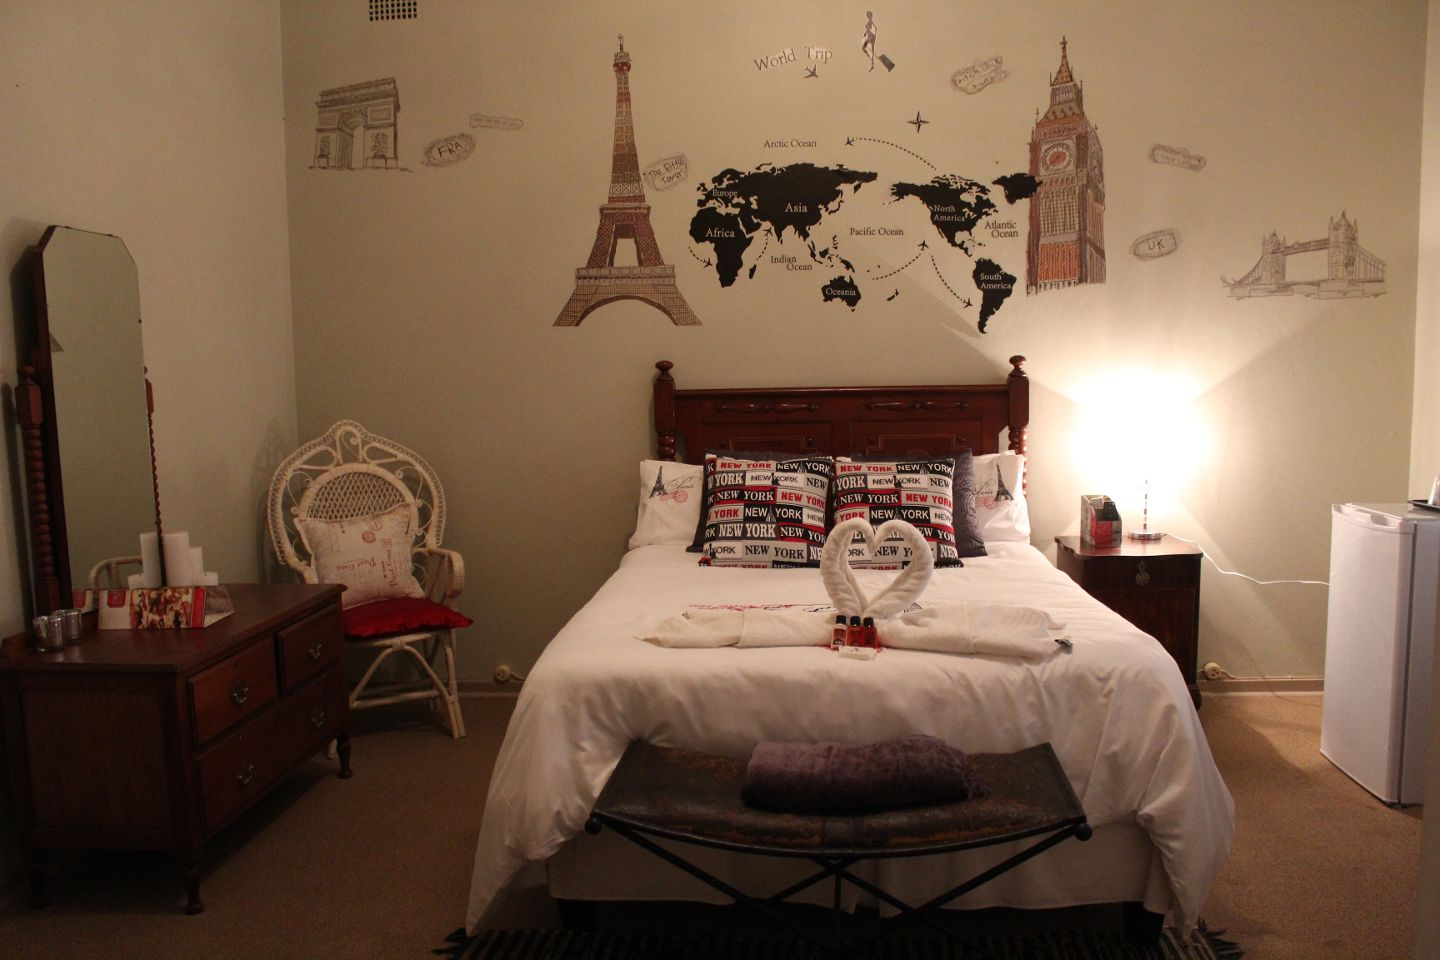 Pictures of Royal Sheba Guesthouse